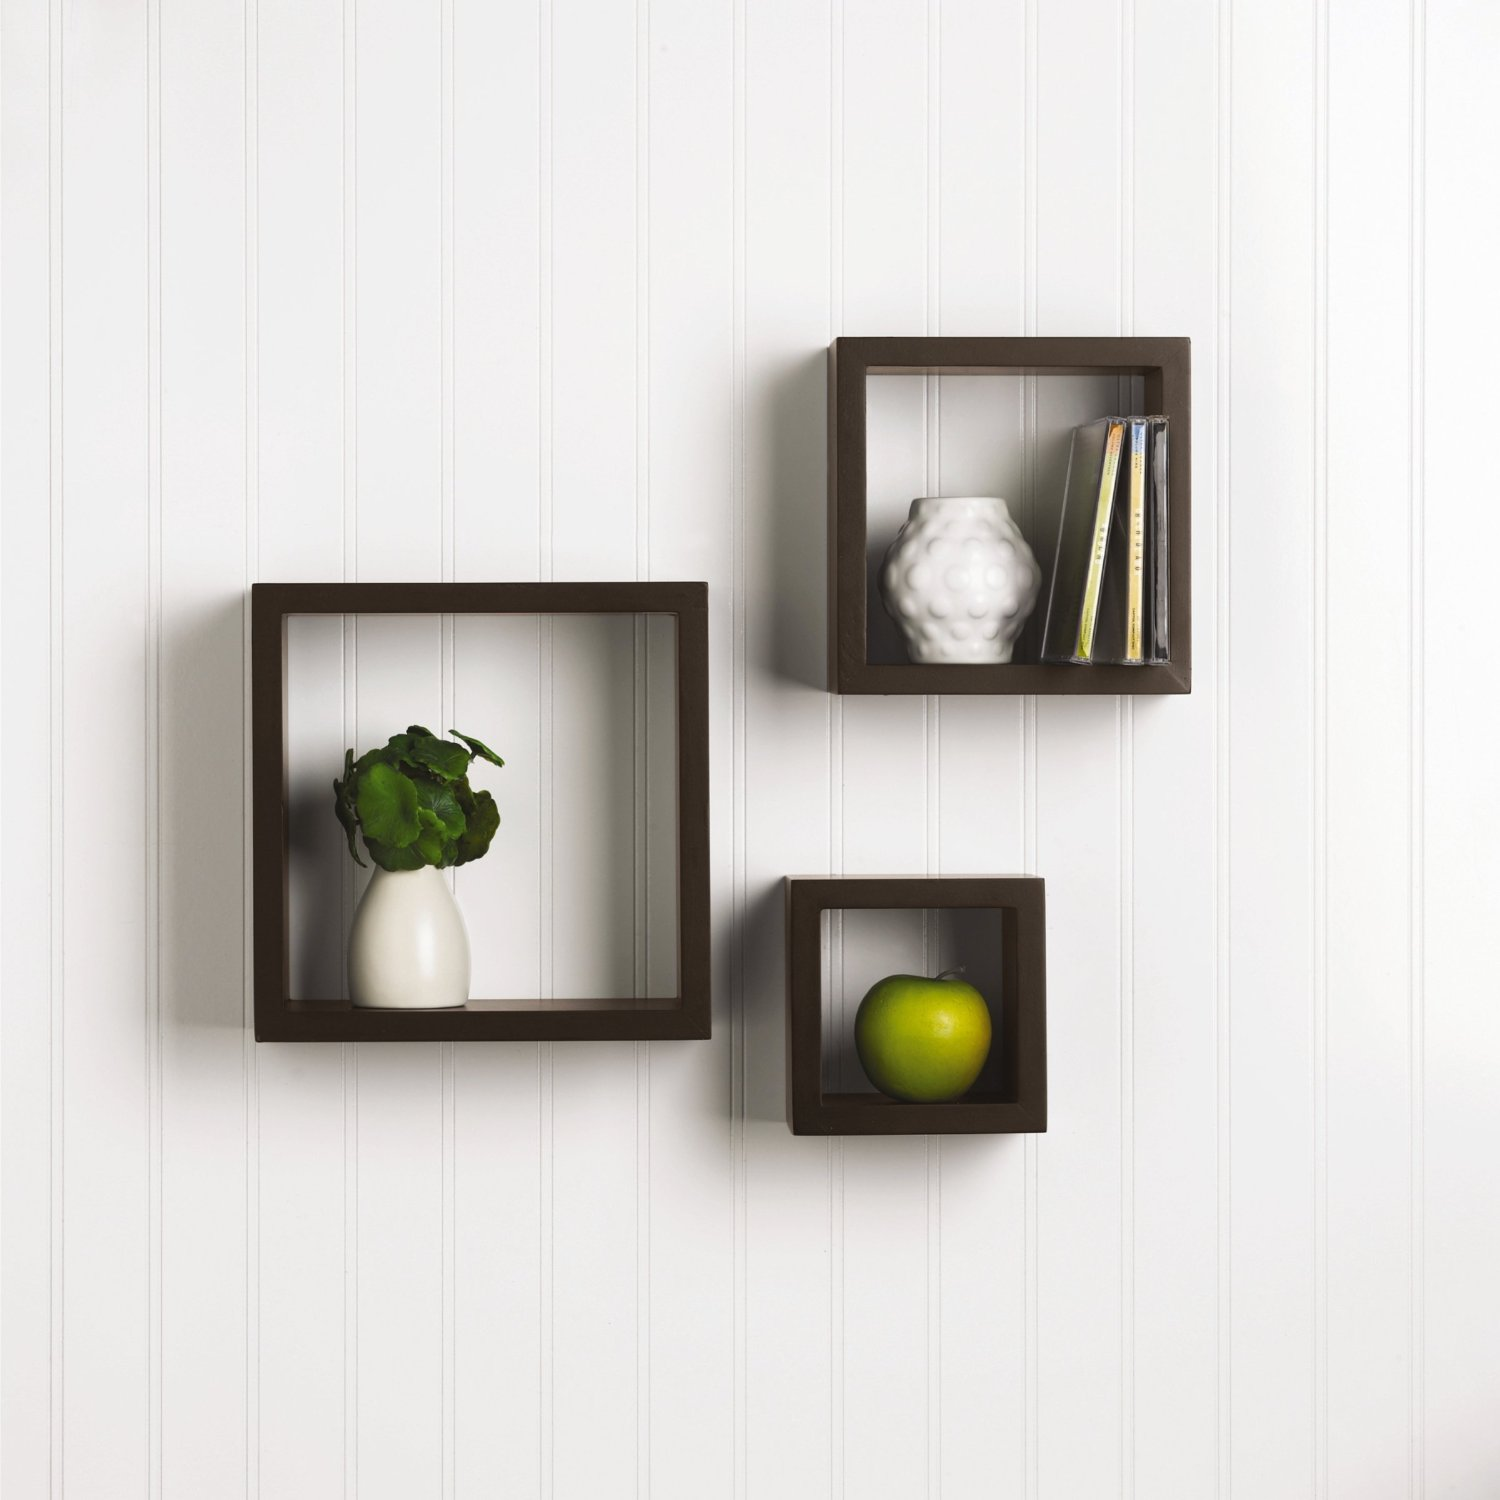 15 Cheap Floating Wall Shelves Under 40 In 2017 that youll Love